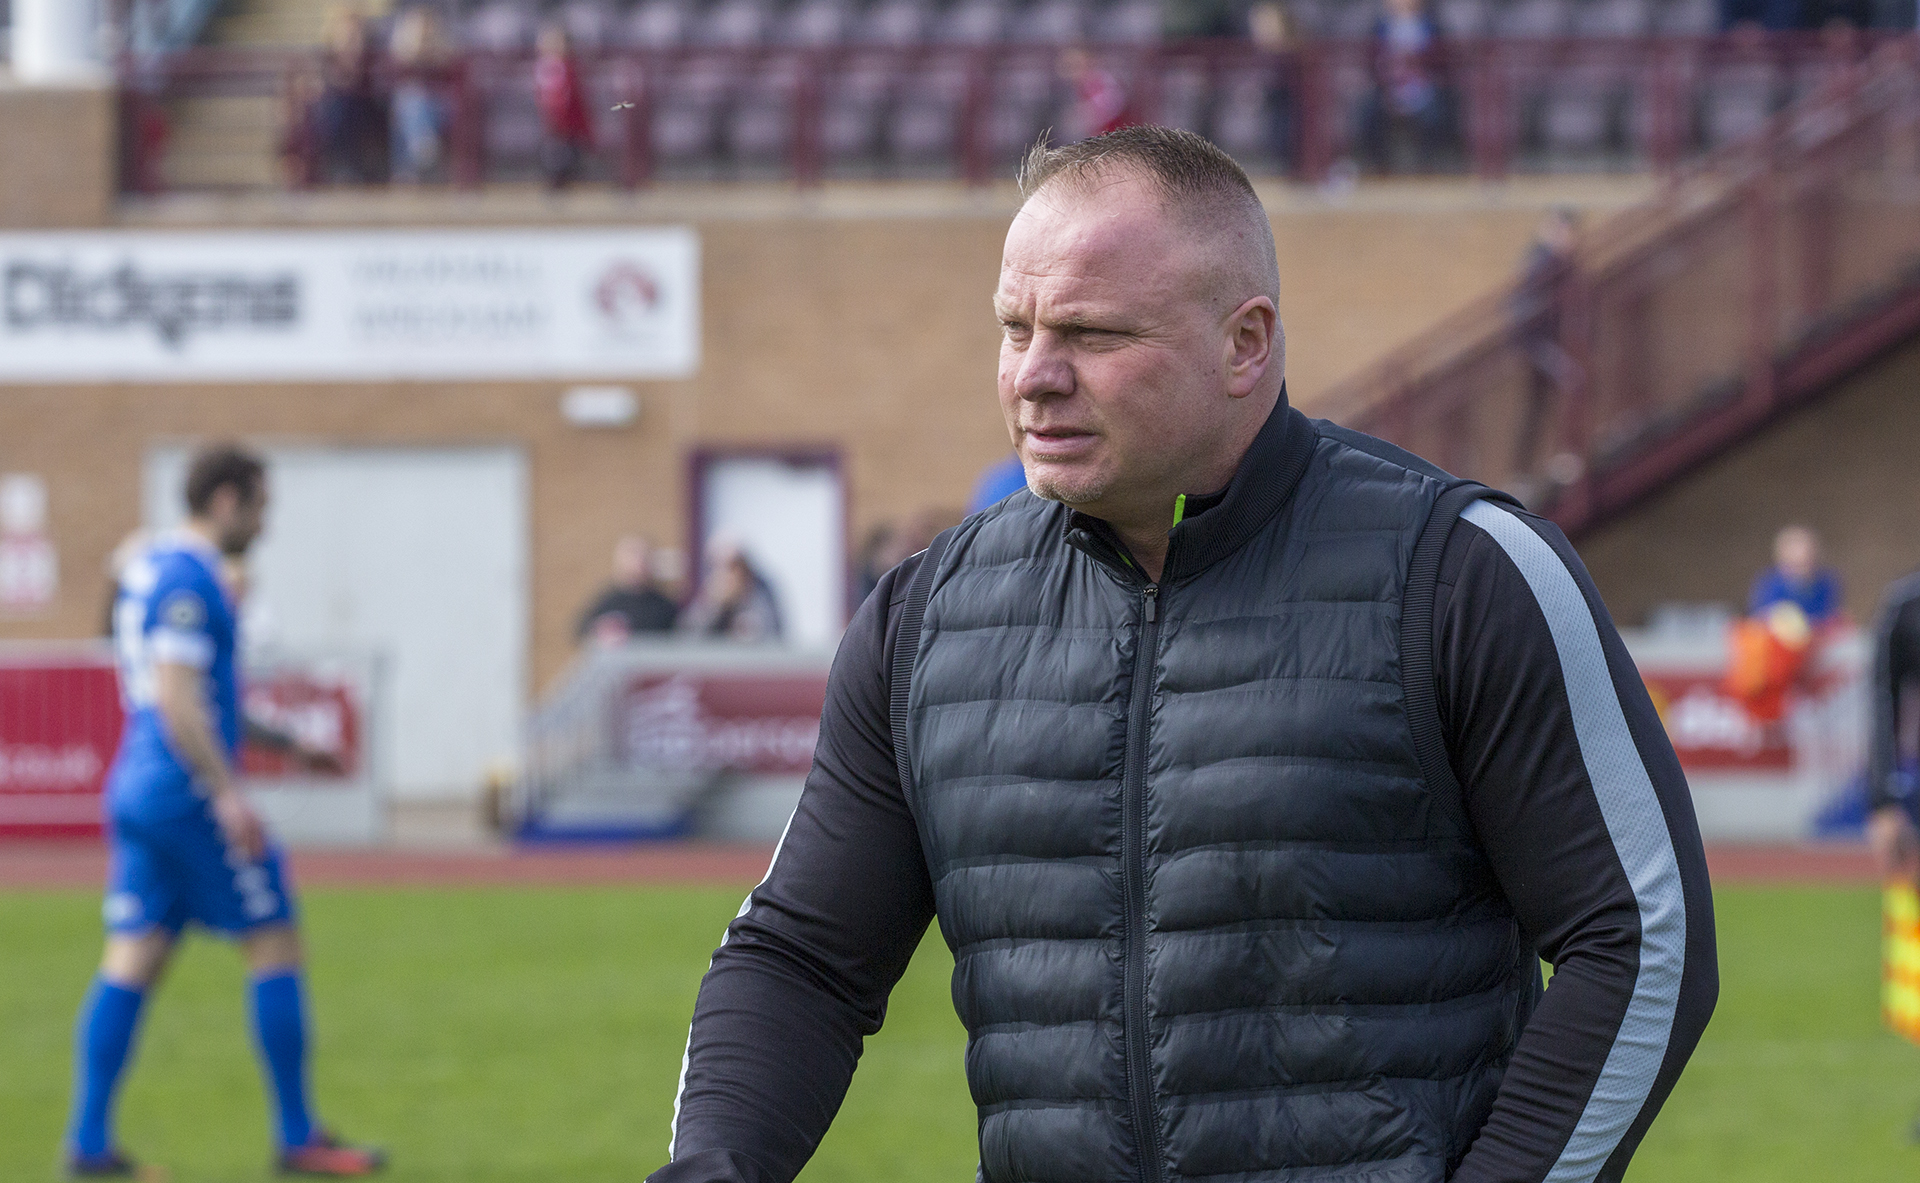 Andy Morrison photographed ahead of kickoff between The Nomads and Bangor City - © NCM Media